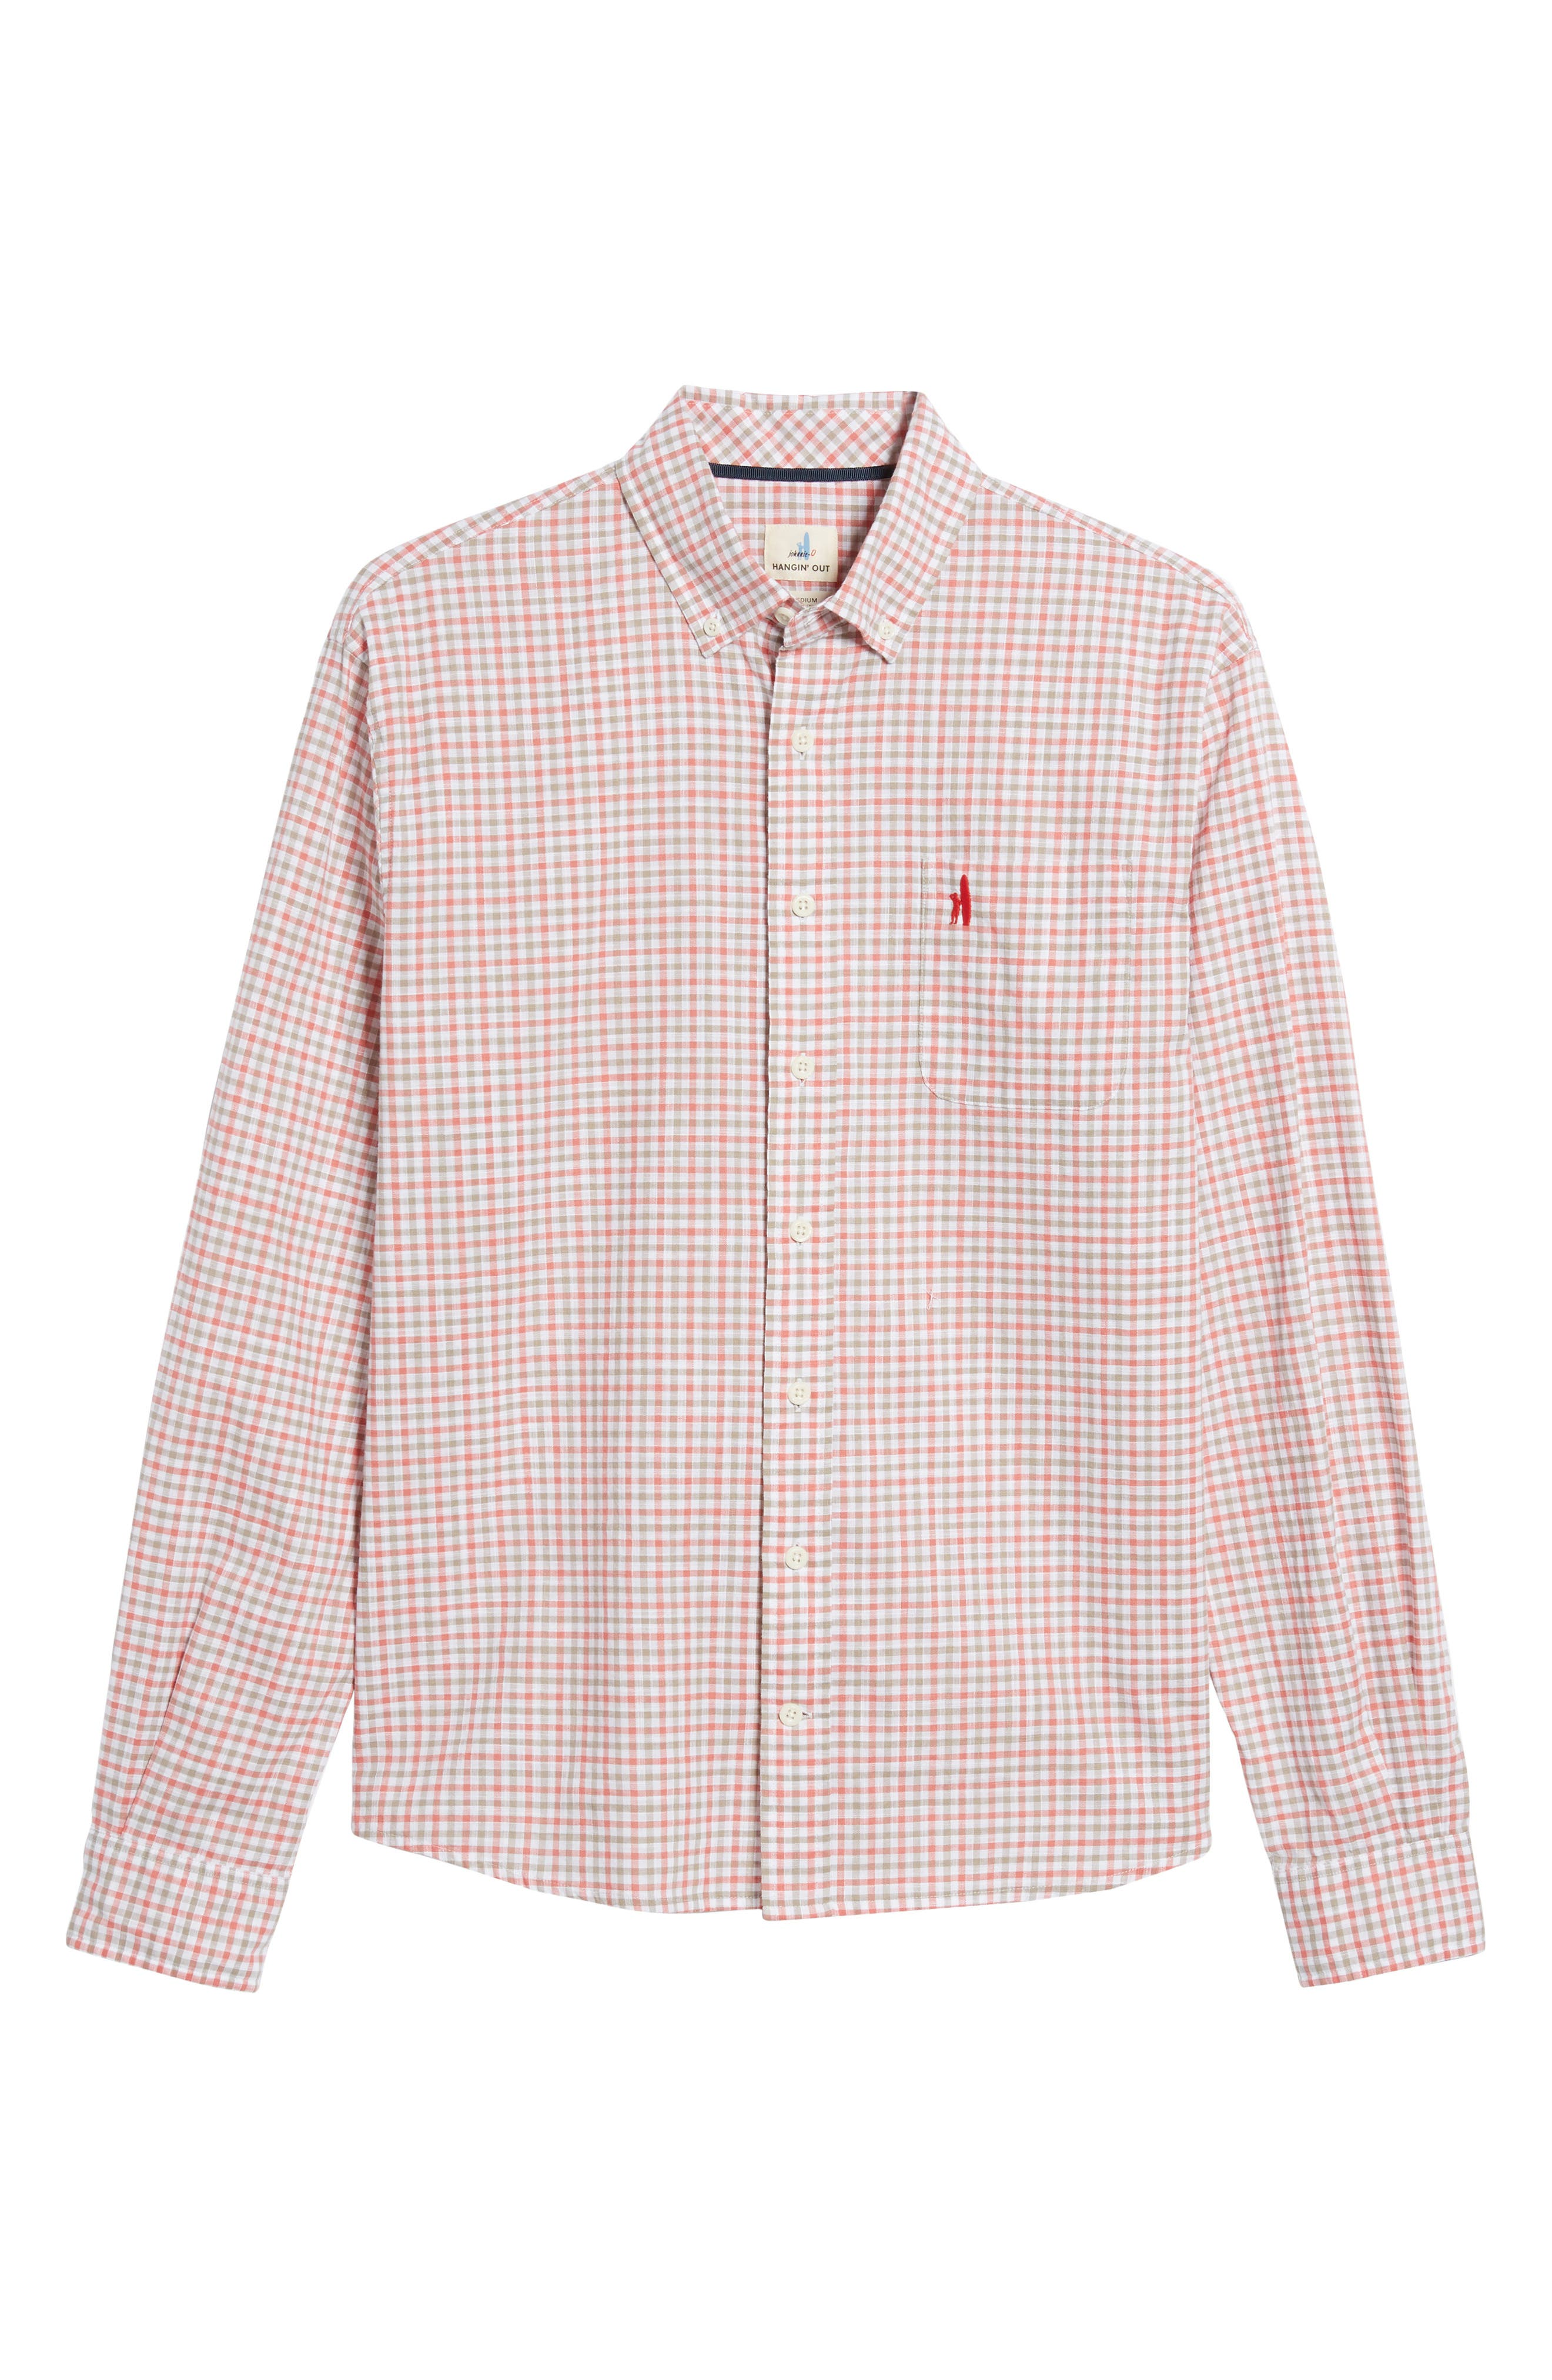 Driscoll Regular Fit Sport Shirt,                             Alternate thumbnail 6, color,                             Malibu Red